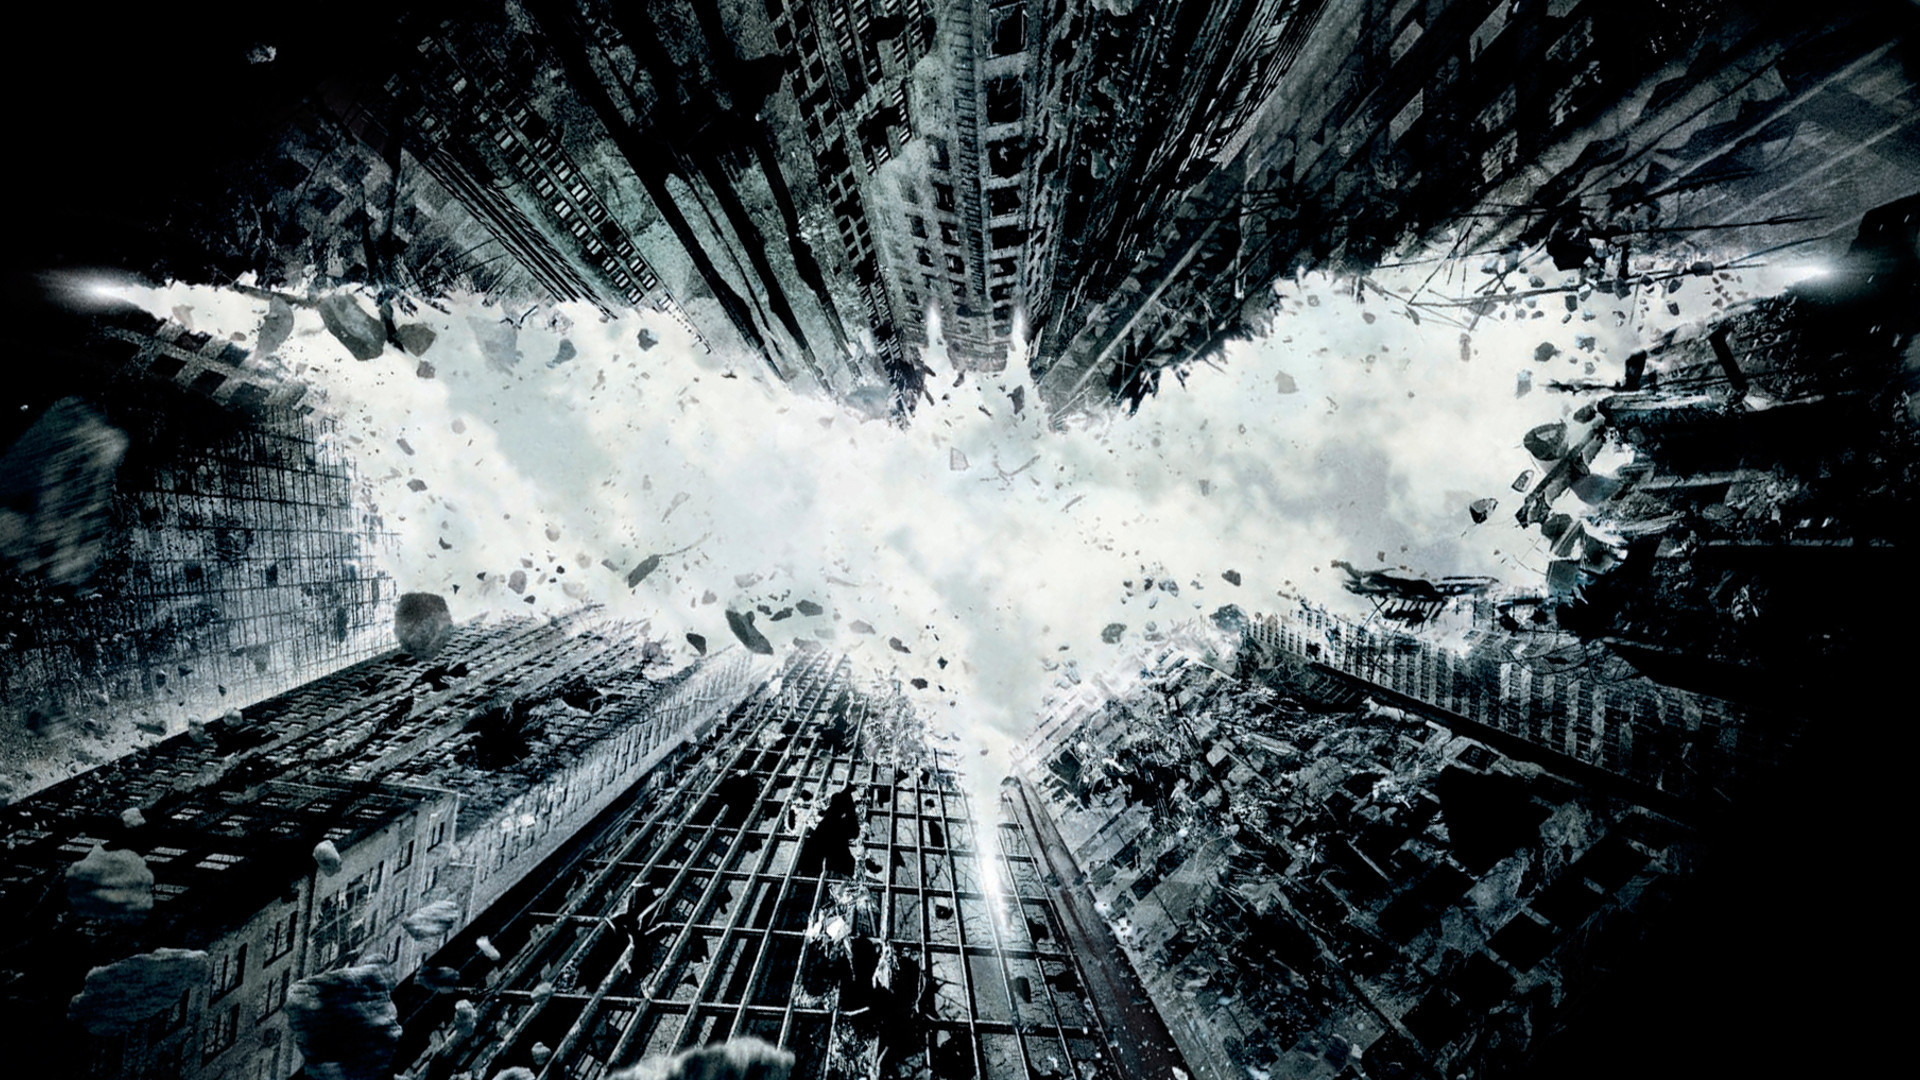 dark knight rises hd wallpapers dark knight rises desktop backgrounds 1920x1080